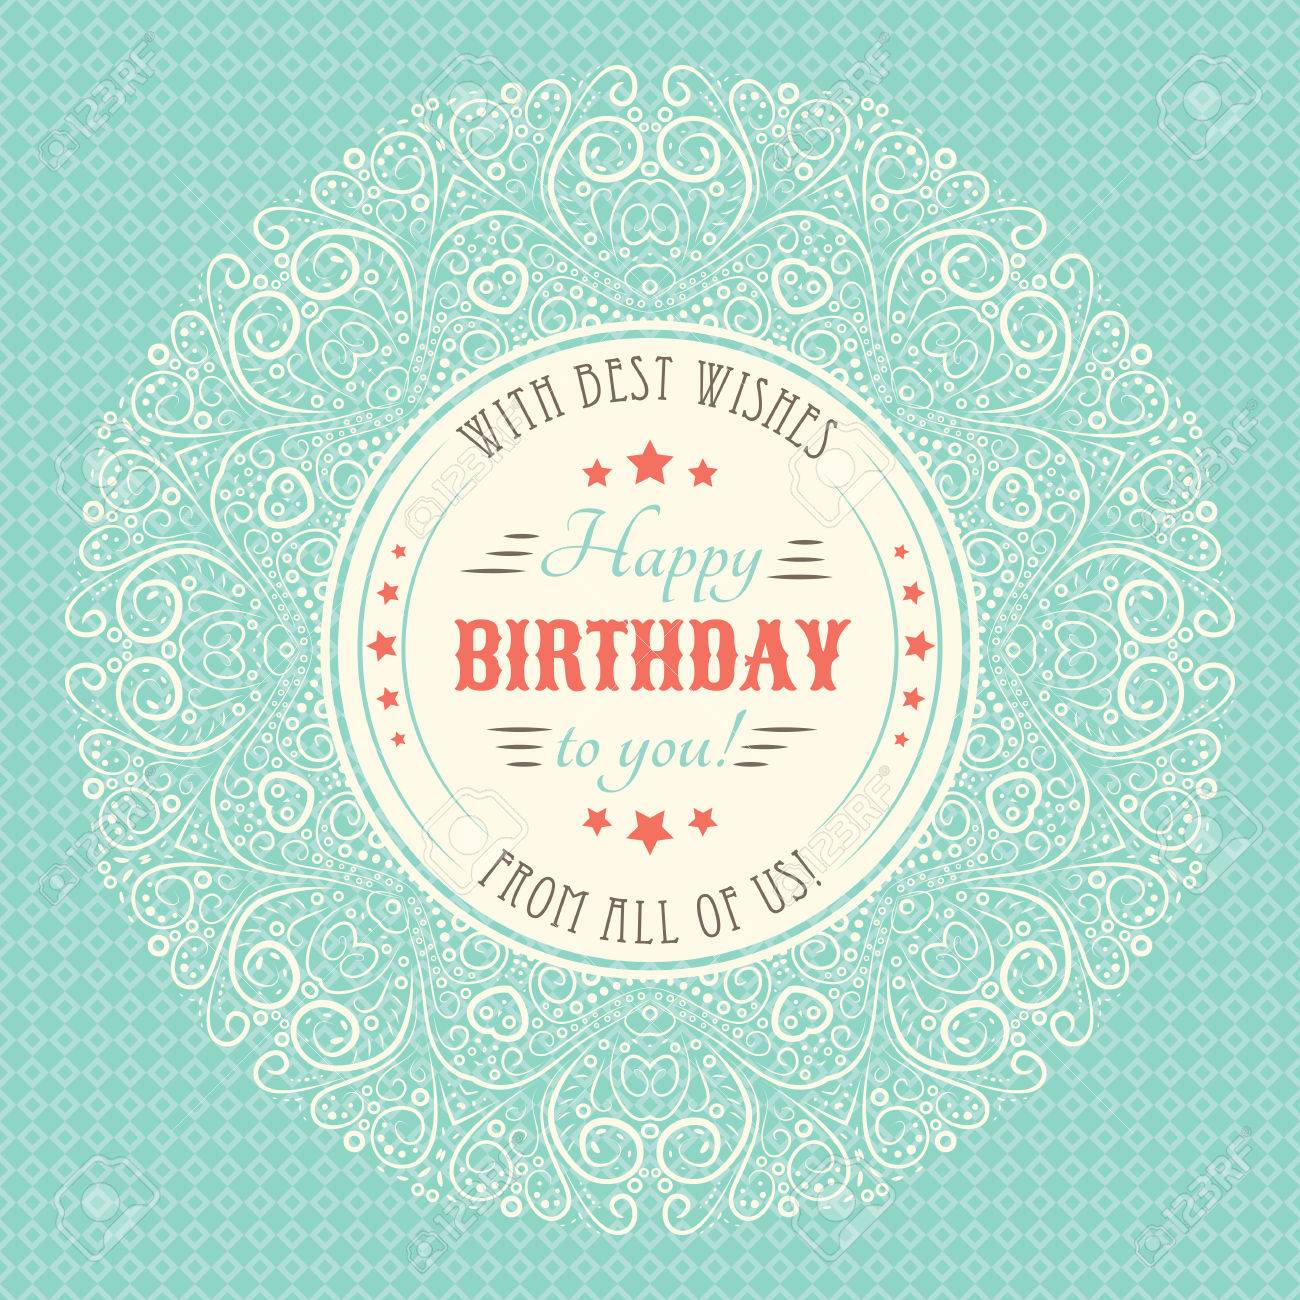 Vintage Happy Birthday Card Typography Letters Font Type Illustration Stock Photo Picture And Royalty Free Image Image 44243312